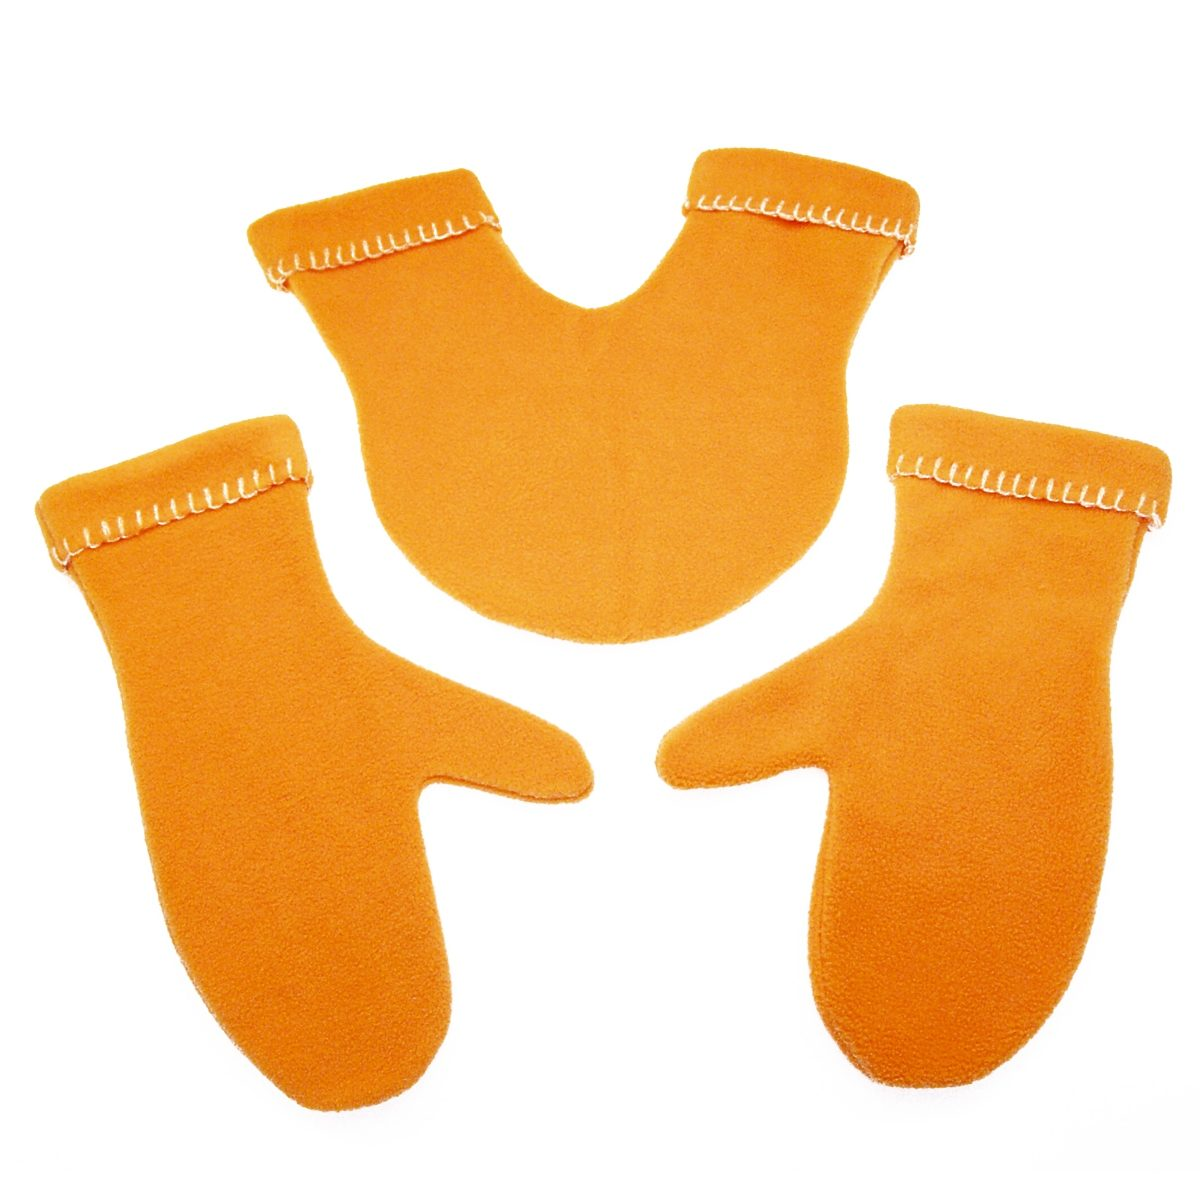 Radius Radius Handschuhe GLOVERS orange